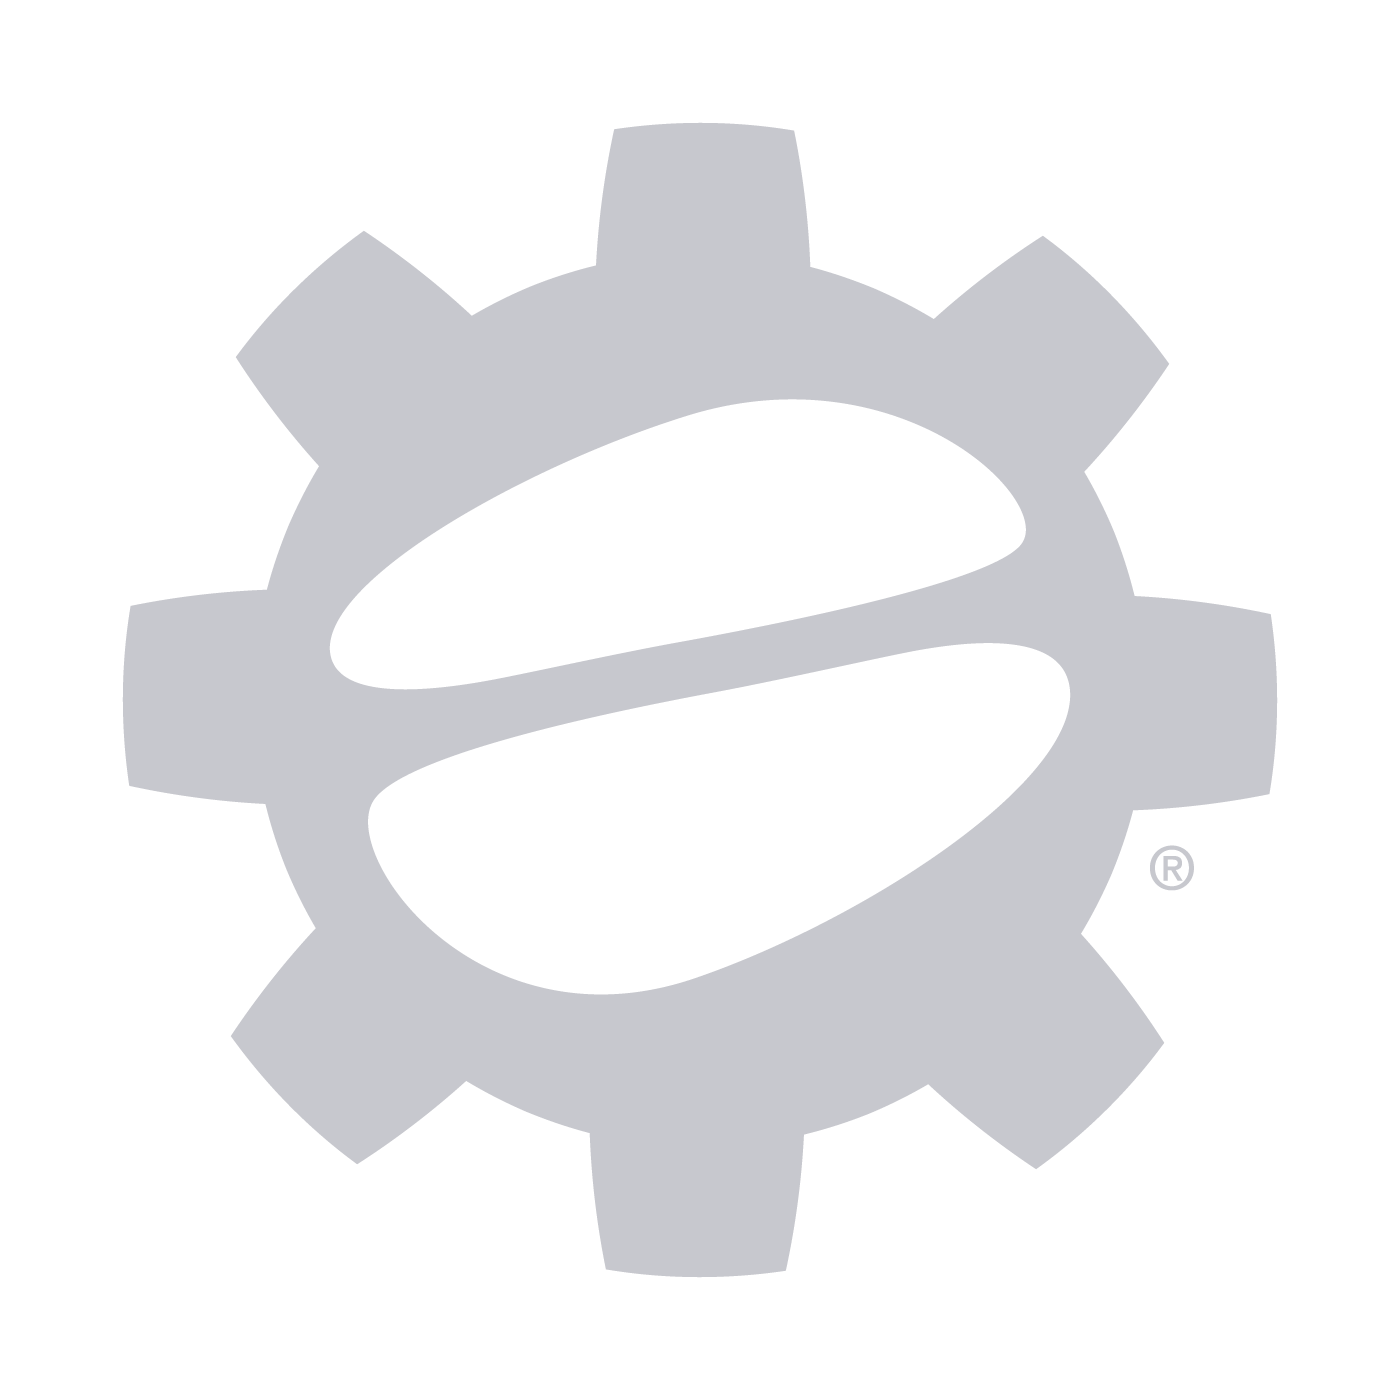 Batdorf and Bronson Coffee Roasters - Whirling Dervish